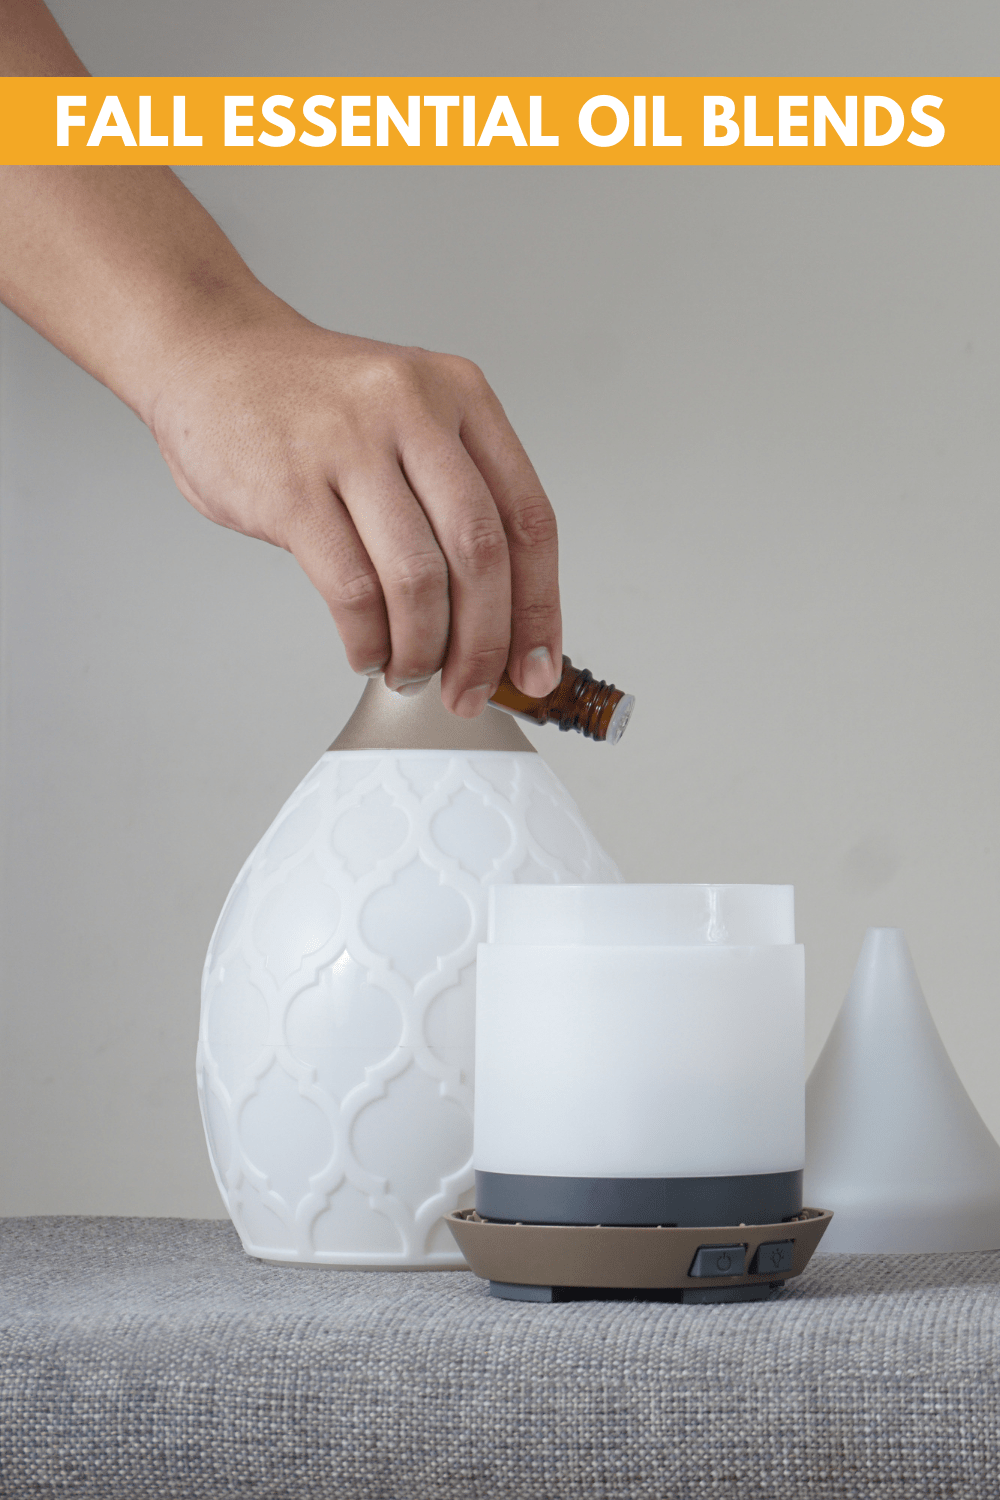 Fall Essential Oil Blends to Try